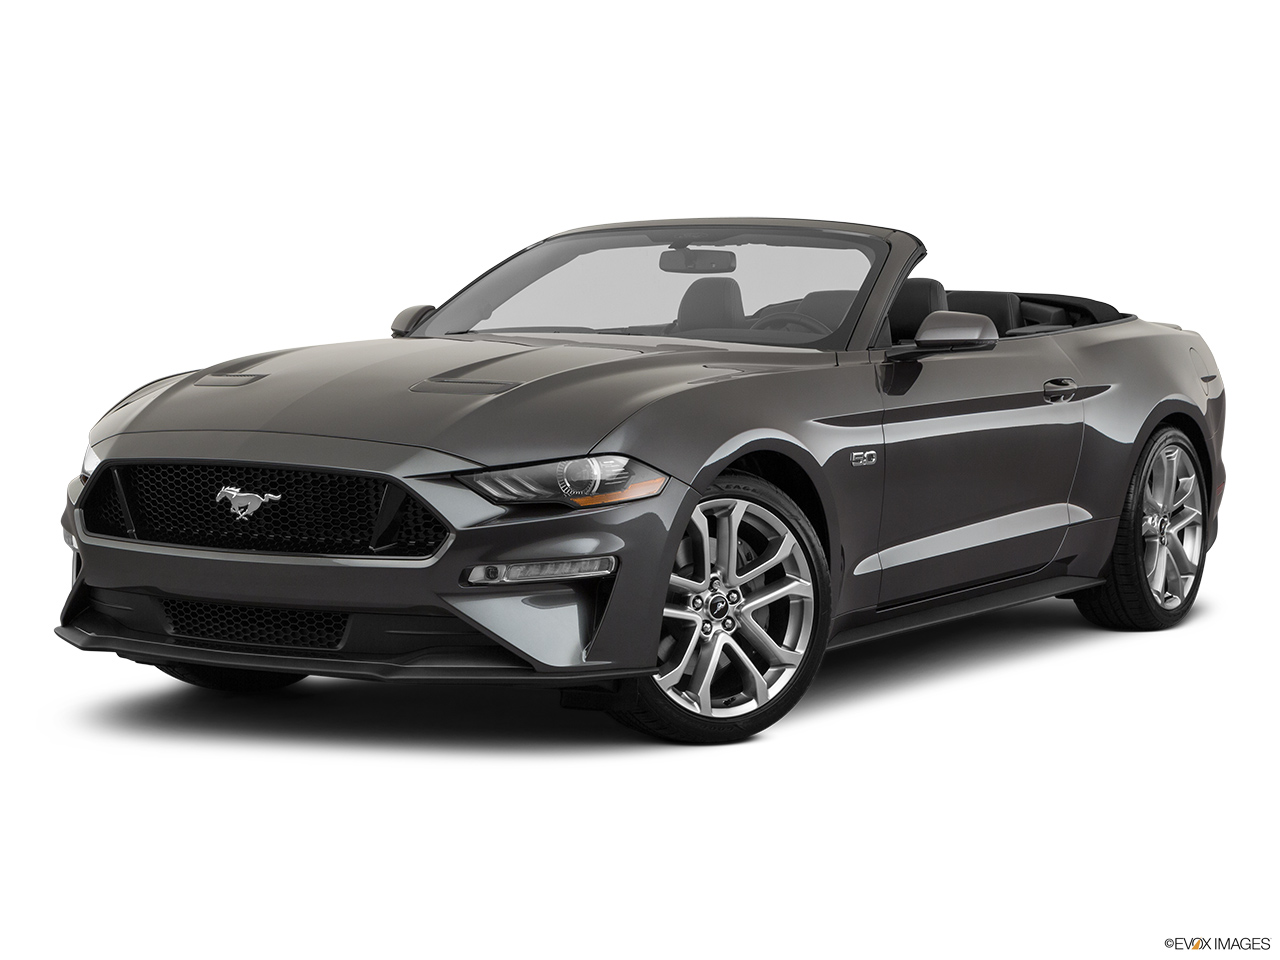 Car Pictures List for Ford Mustang 2020 5.0L V8 ...